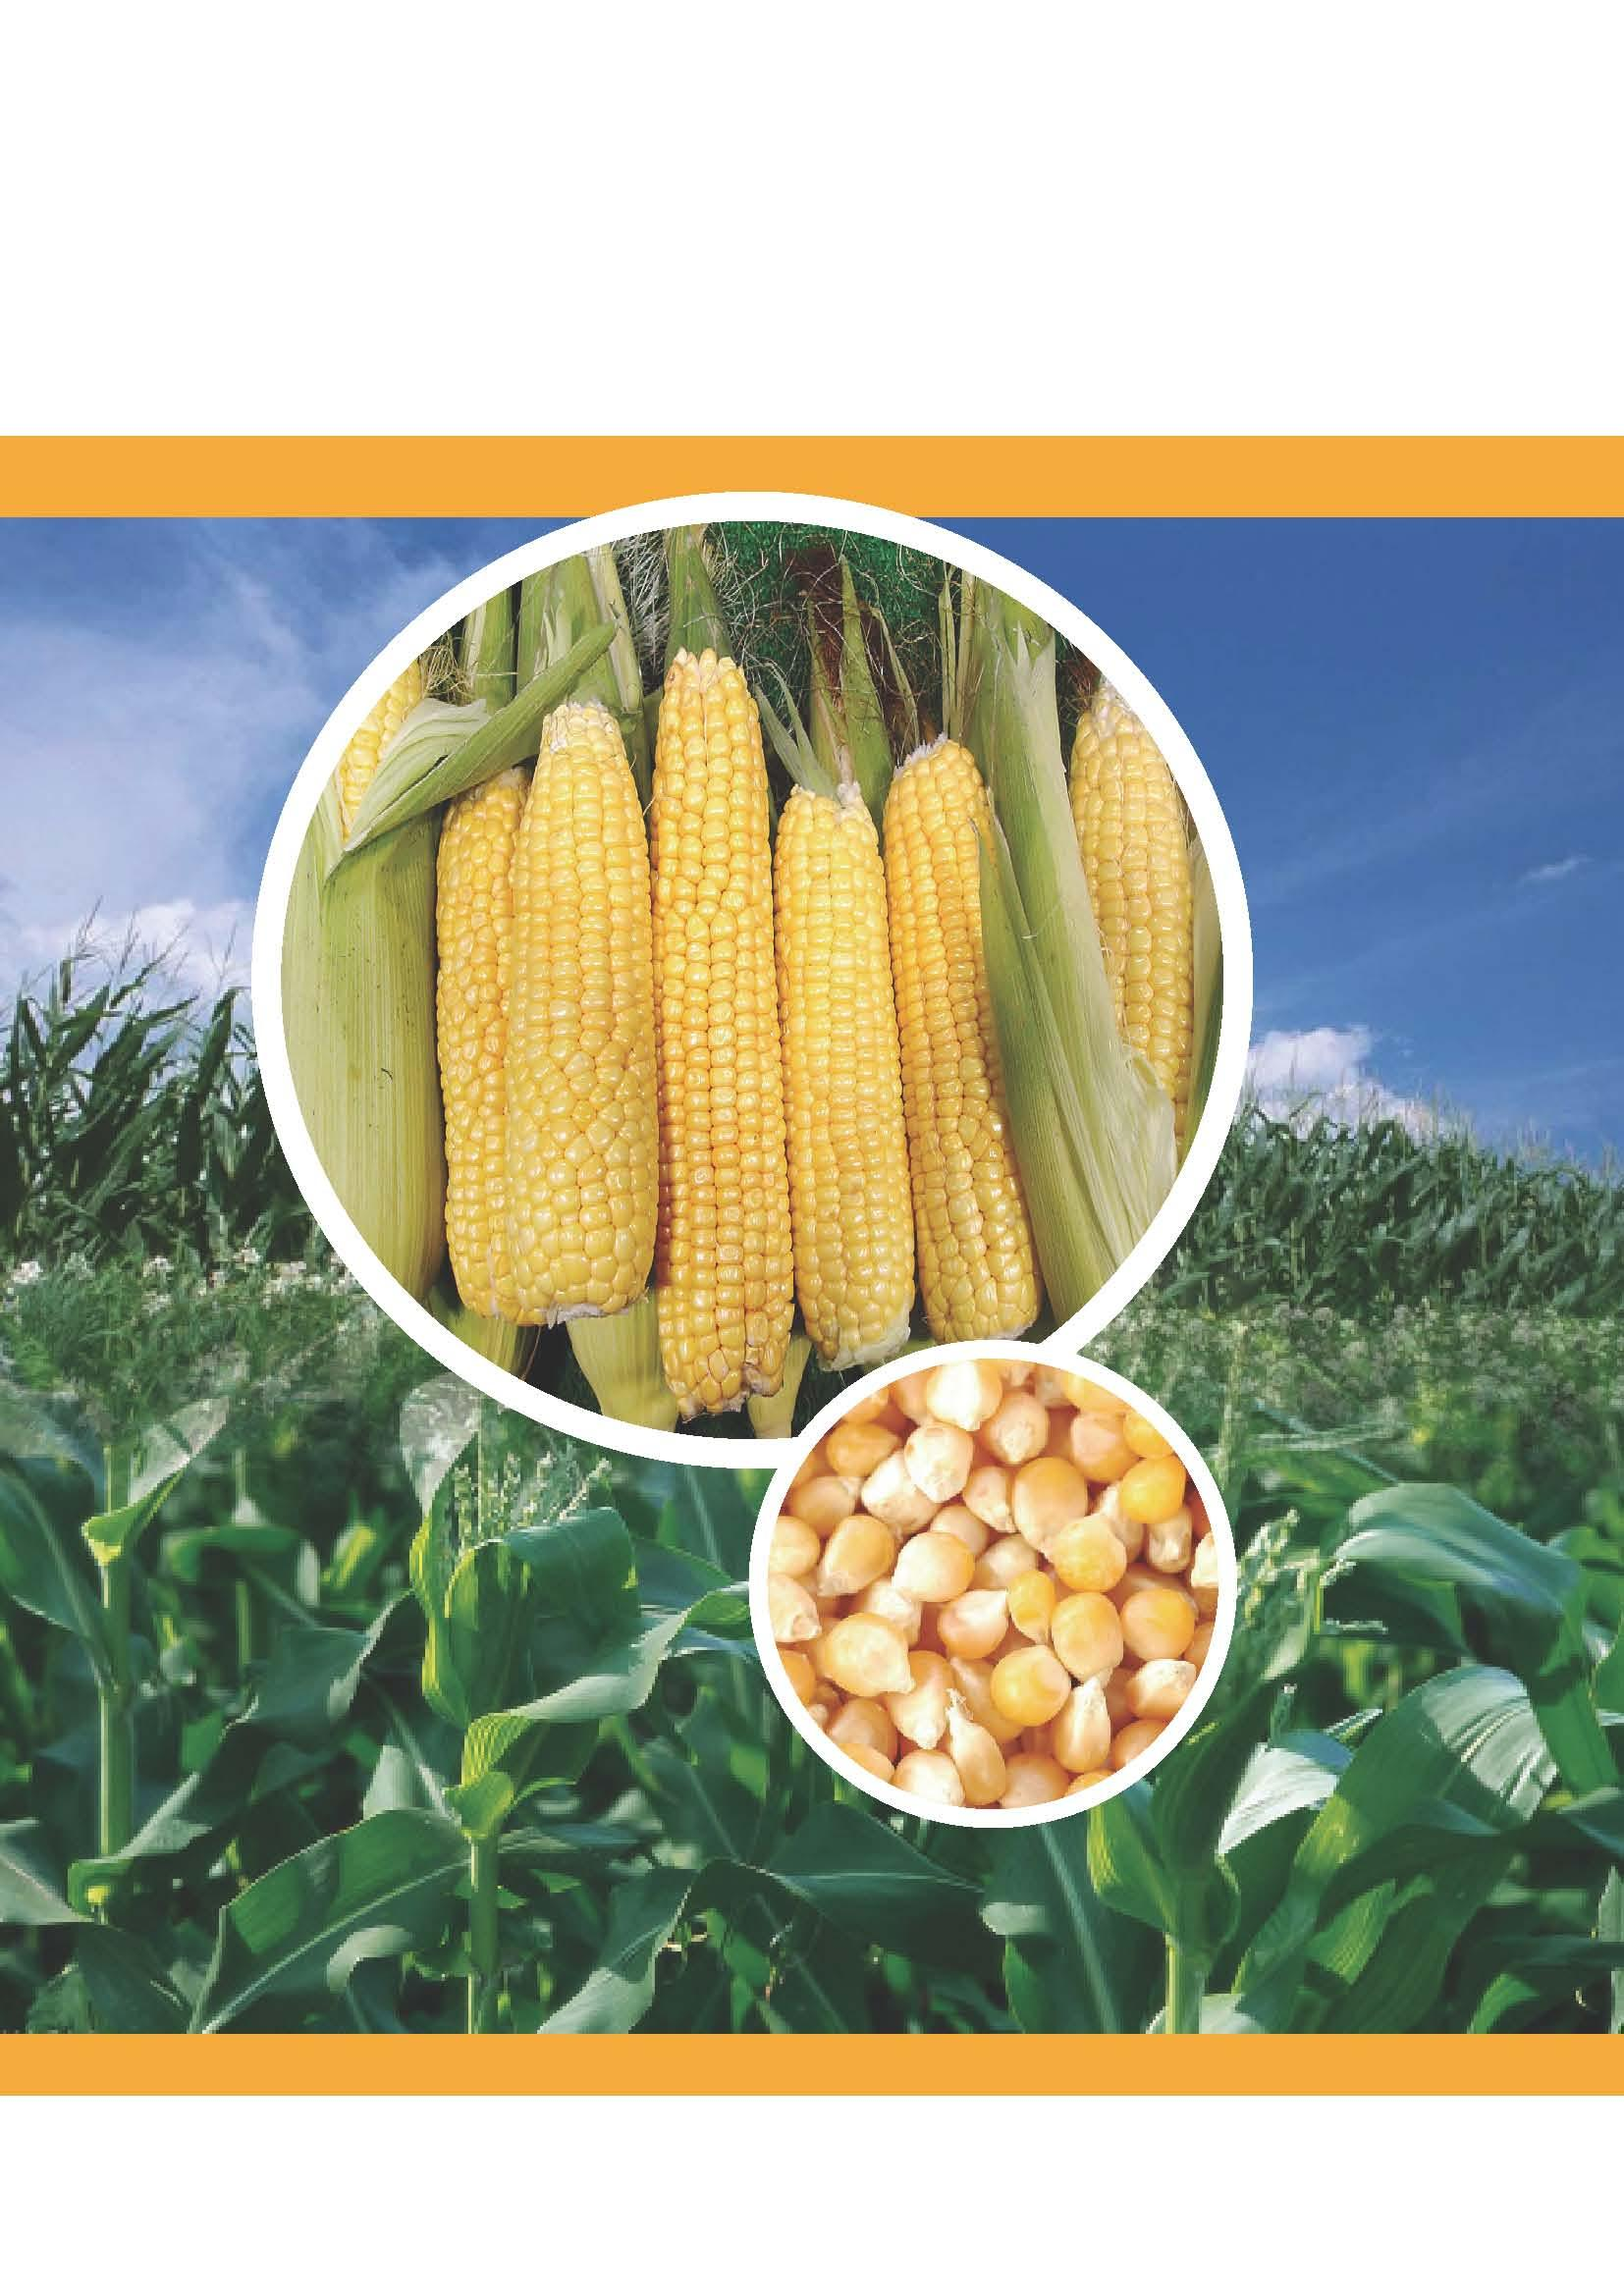 Corn Products China News